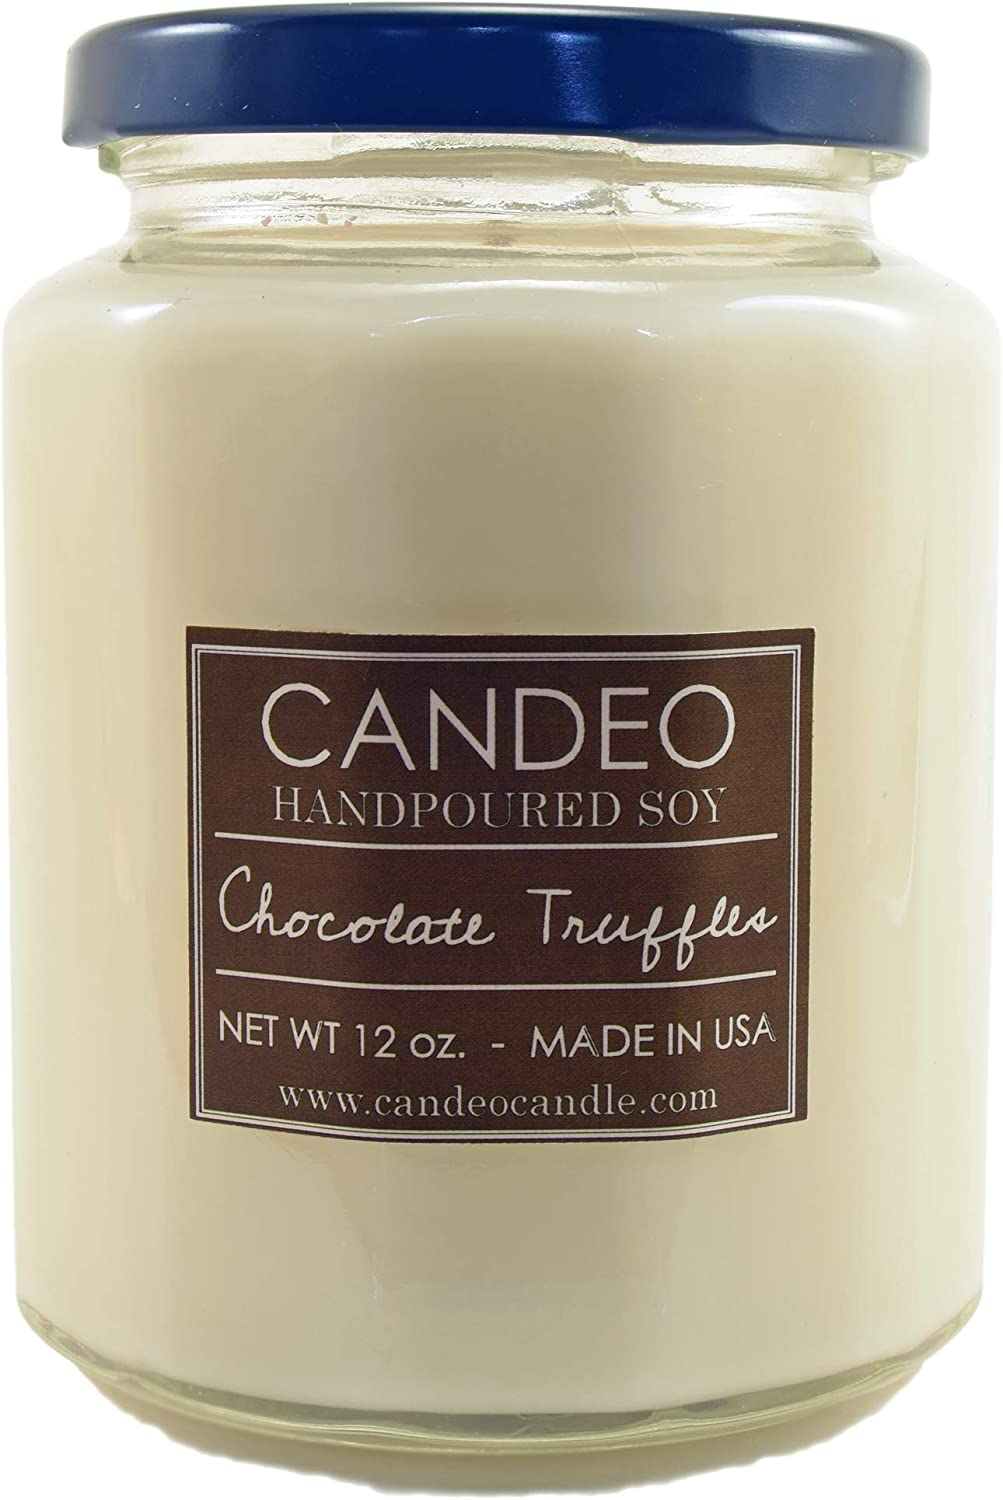 Chocolate Truffles, Handpoured Soy Candle Jar, Made in The USA, 12 oz Jar Candle